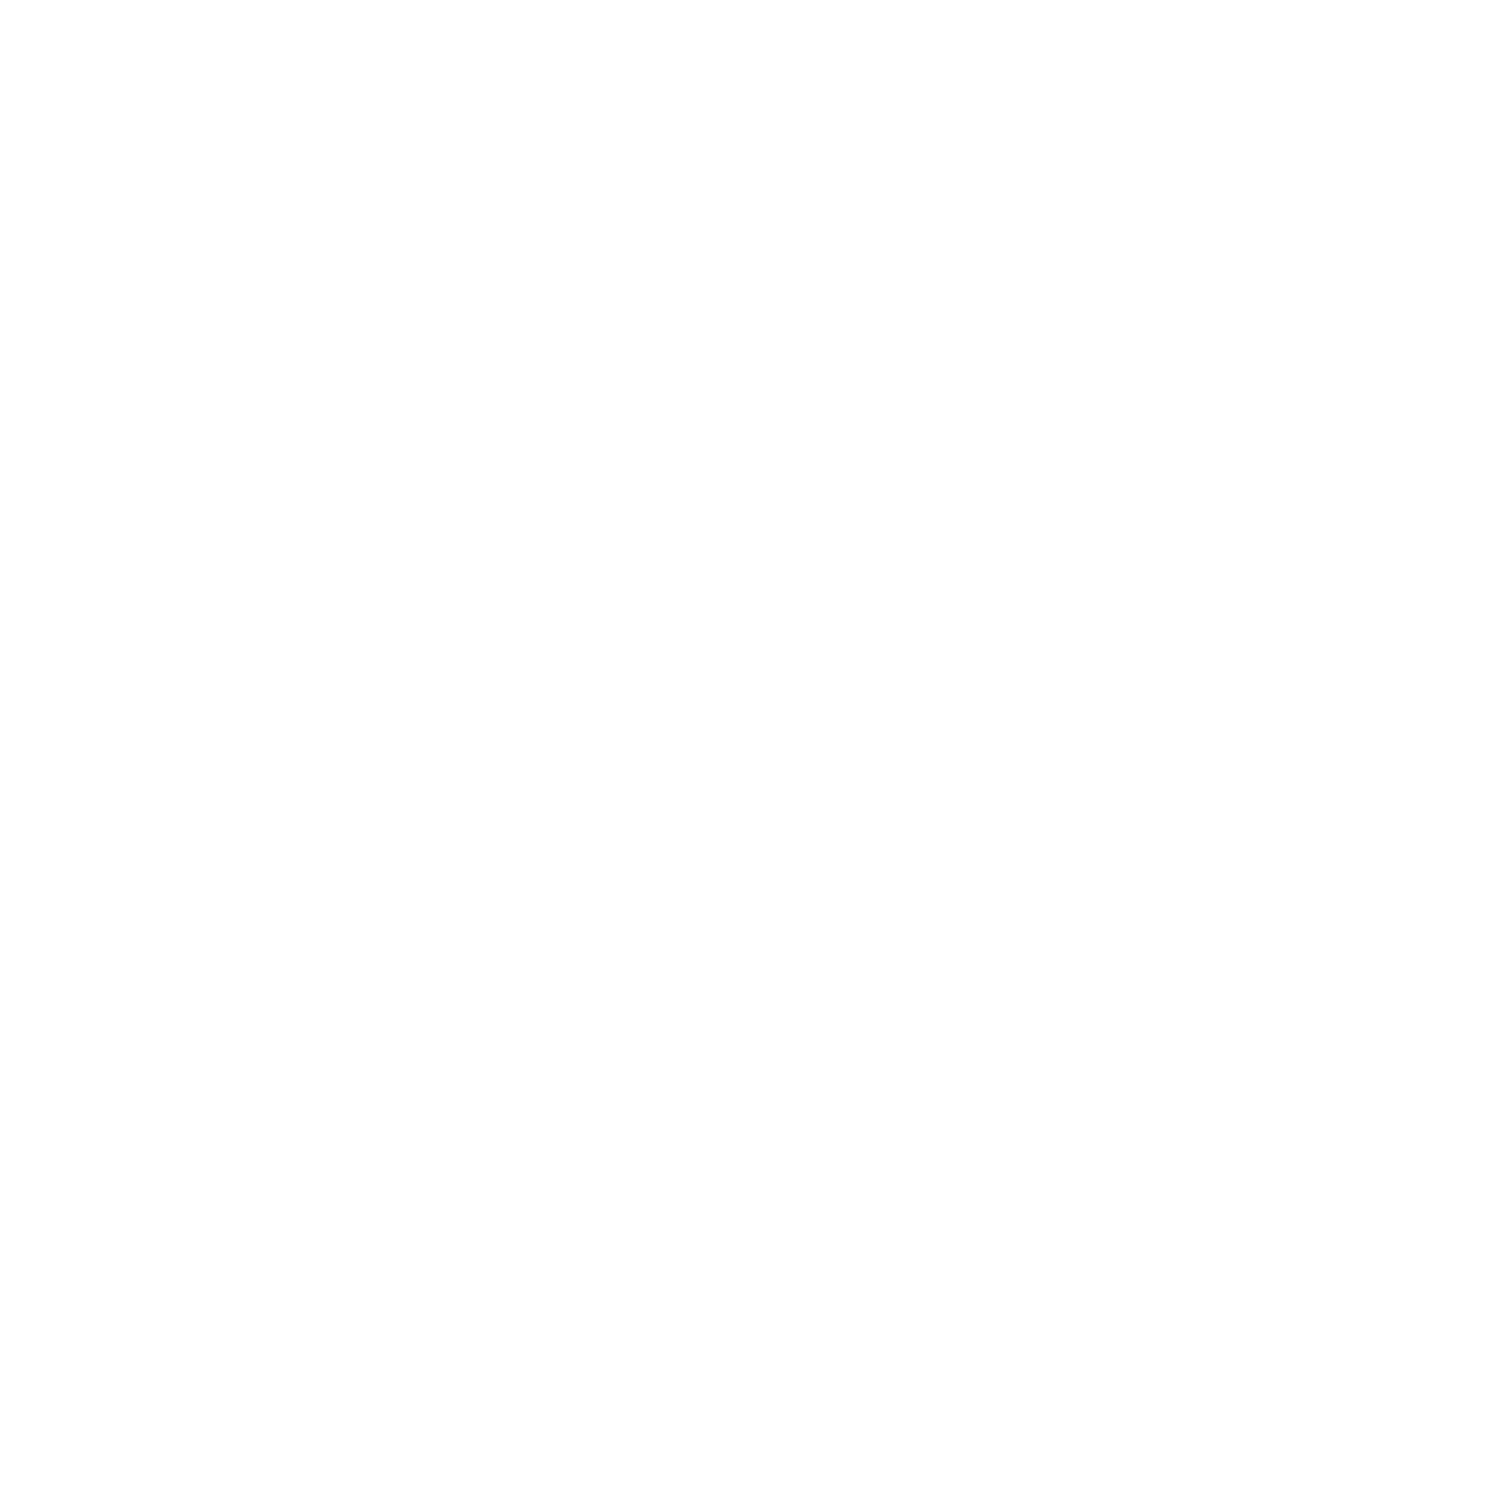 VIVE Church, Bay Area, CA